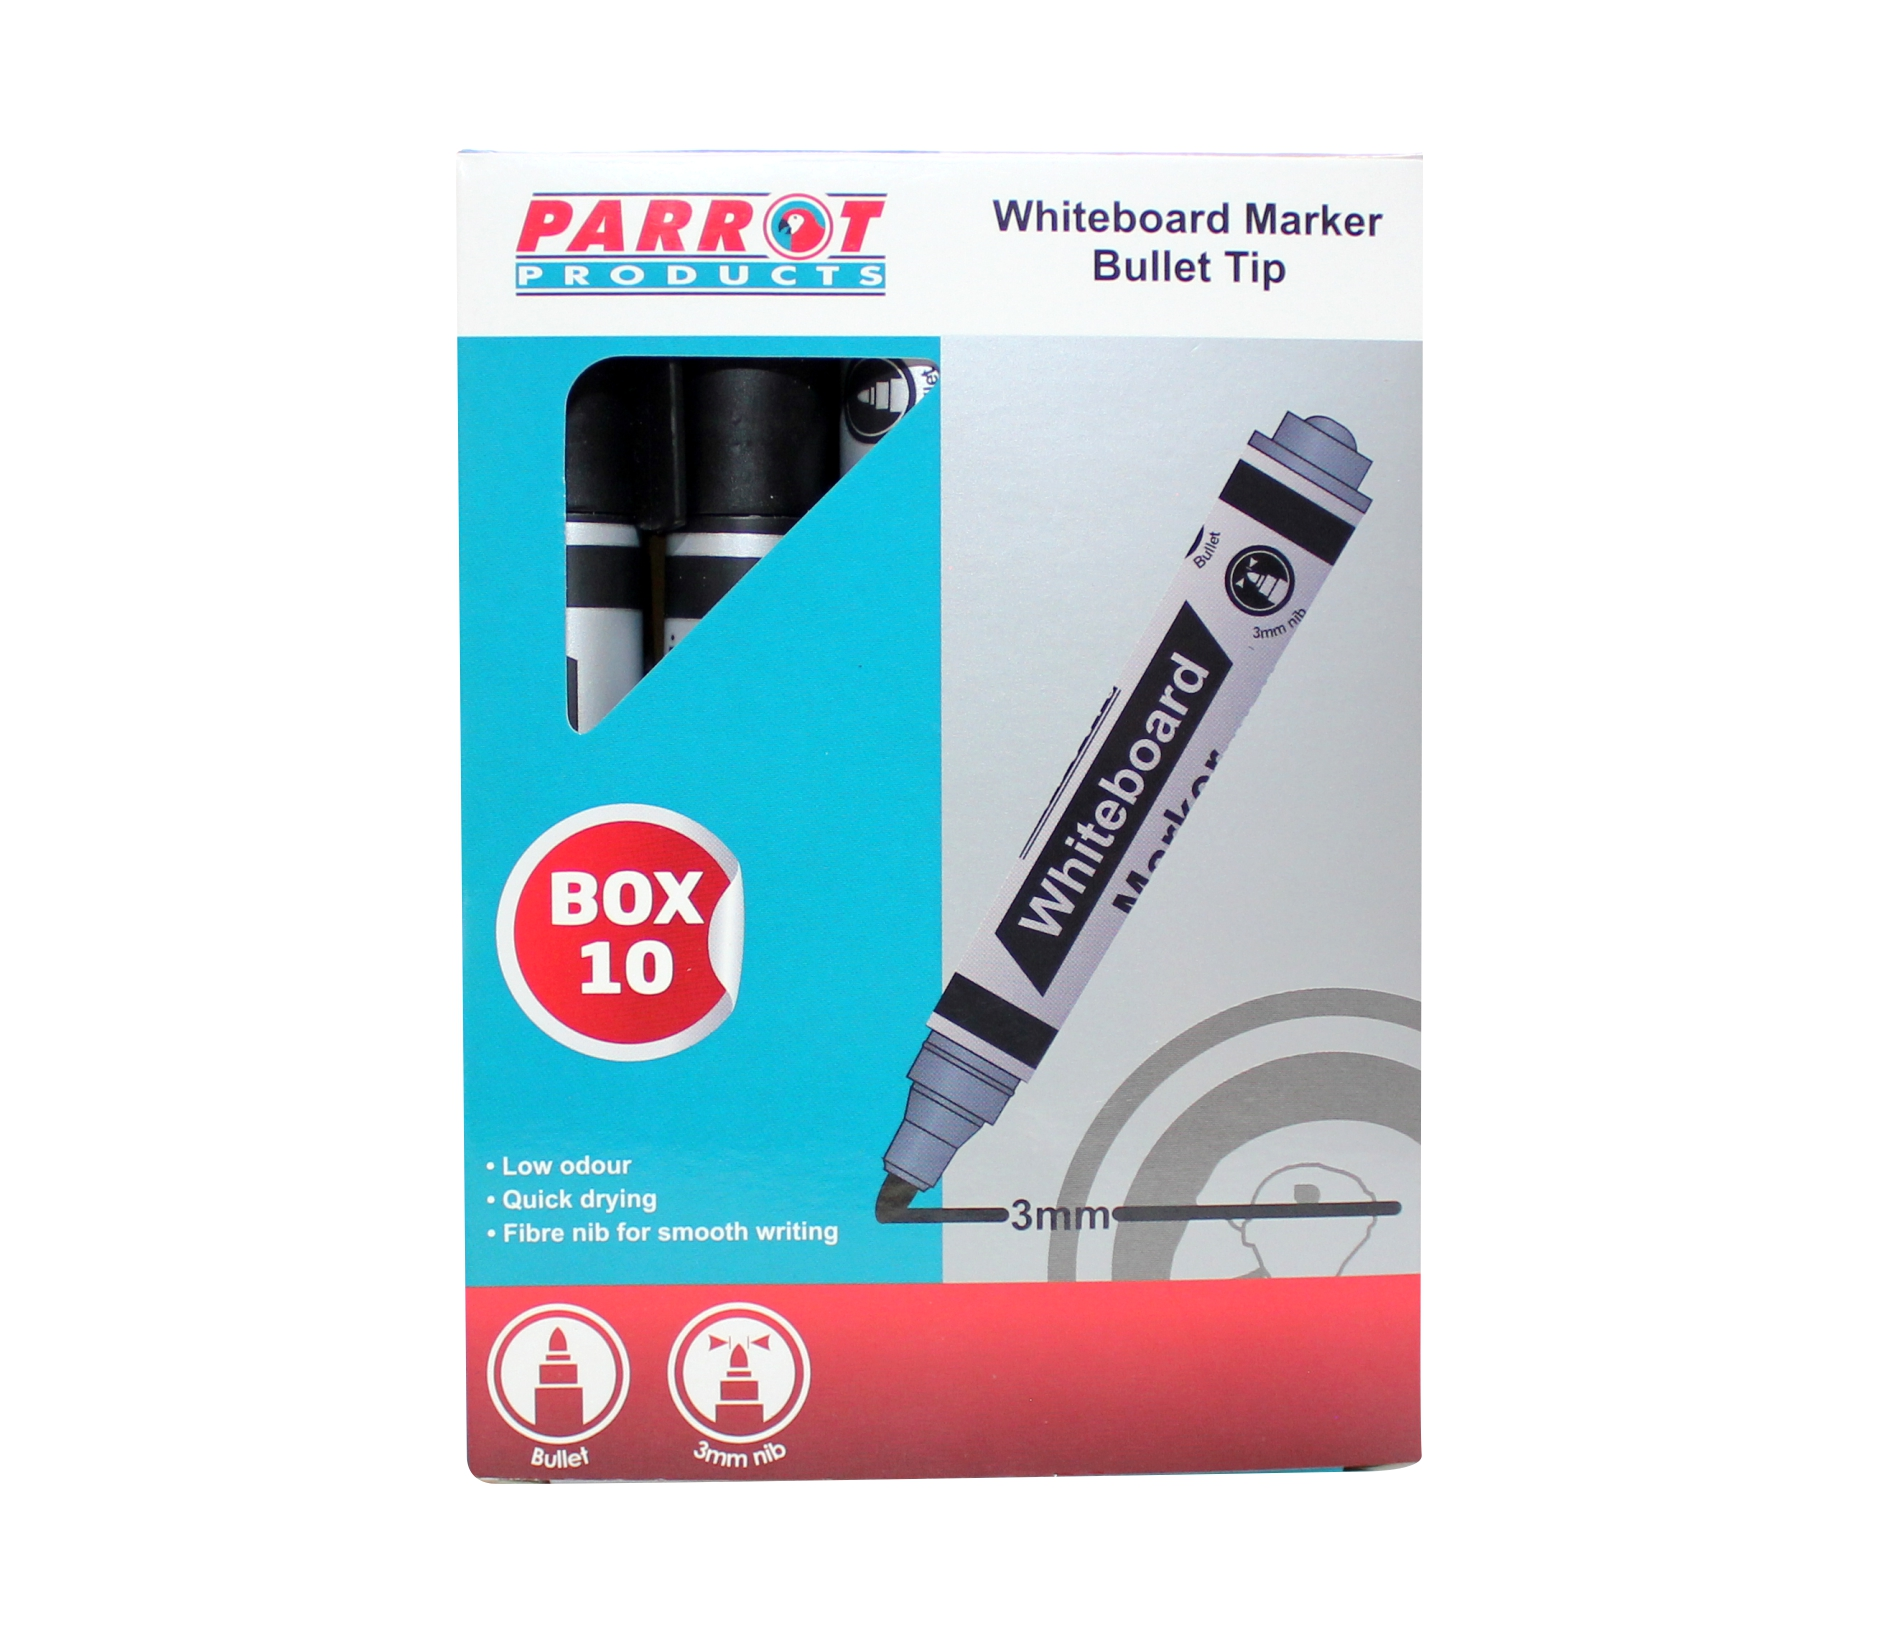 Whiteboard Markers (10 Markers, Bullet Tip, Black)